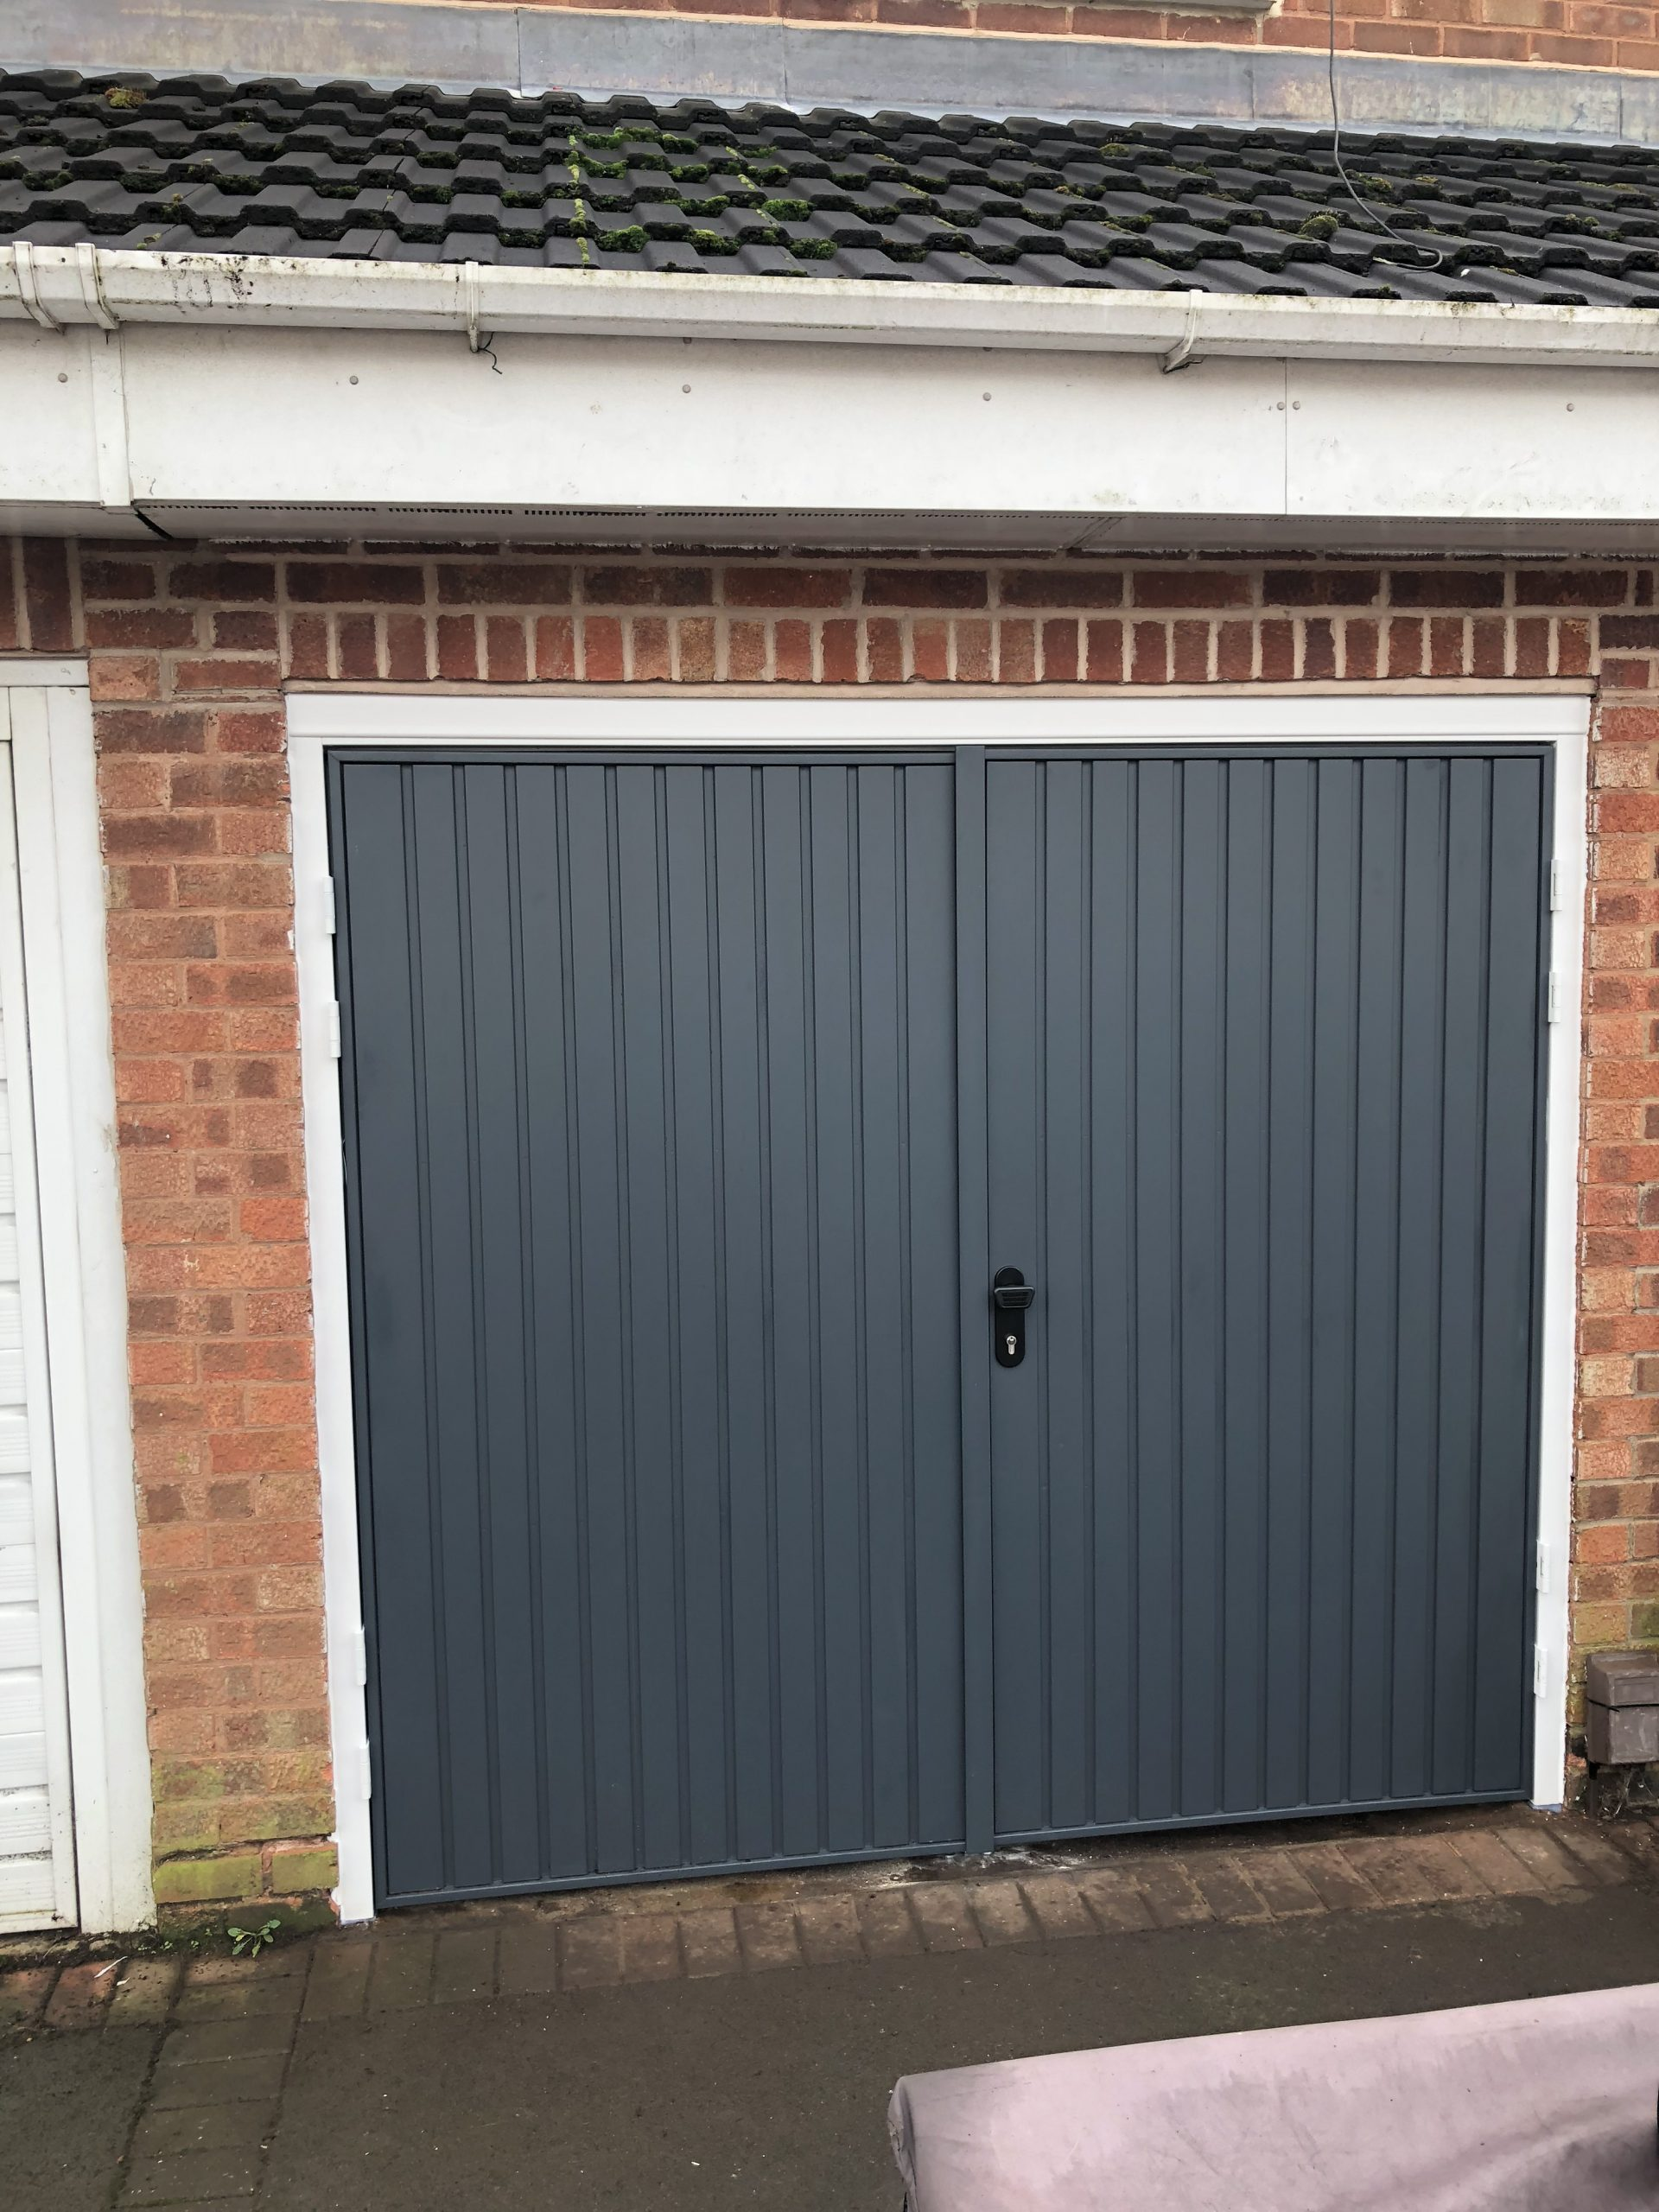 The garage doors repairs Leicester is an excellent alternative